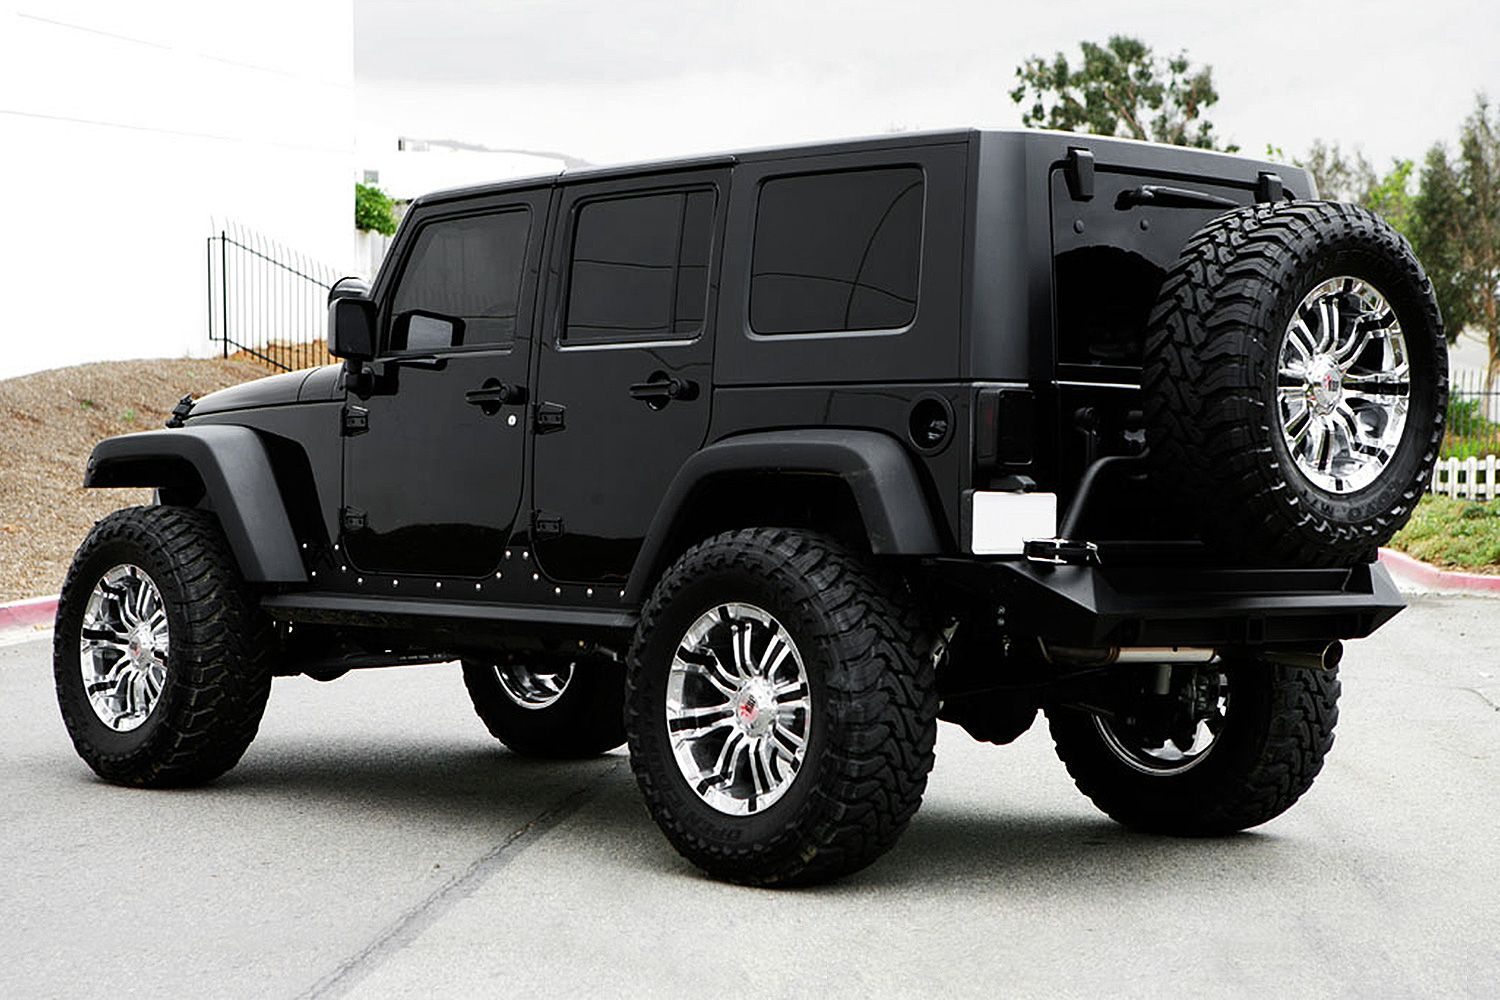 rbp 94r chrome with black inserts on jeep wrangler. Black Bedroom Furniture Sets. Home Design Ideas